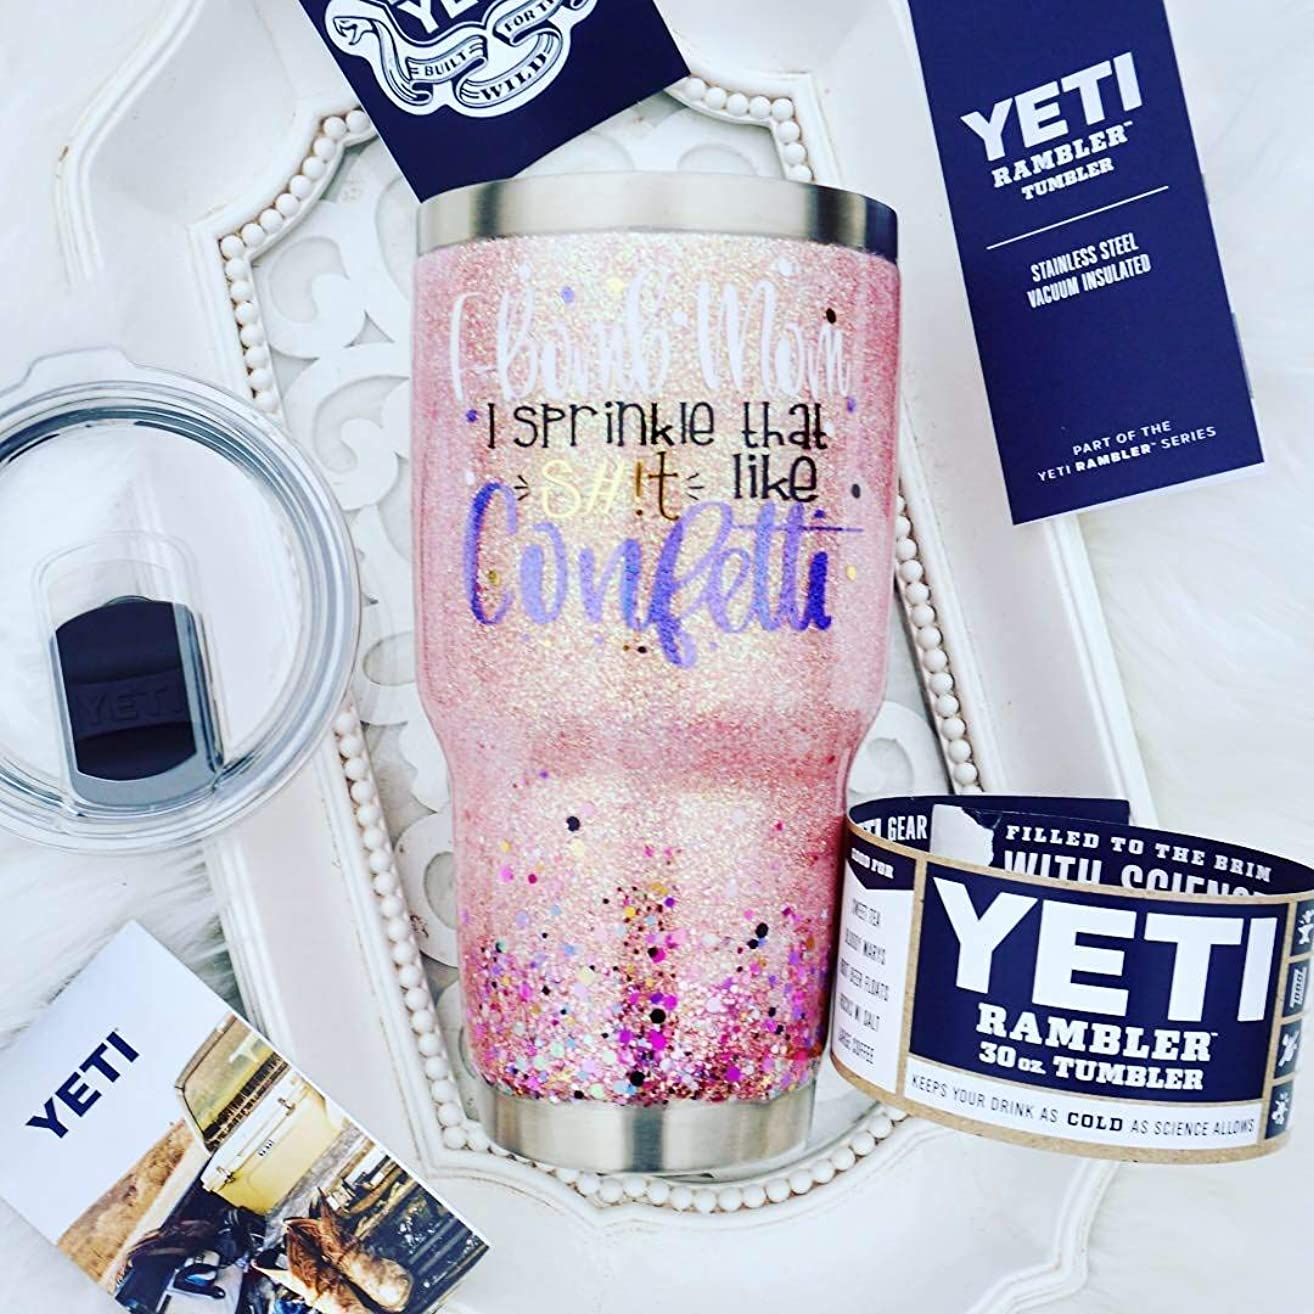 F-Bomb Mom I Sprinkle That S#!t Like Confetti 30 OZ GLITTER YETI RAMBLER Tumbler MagSlider Lid Gift For MOM Double Walled Stainless Steel Pink Opal Pearl Sealed FDA FOOD SAFE Epoxy Resin Shit Censored